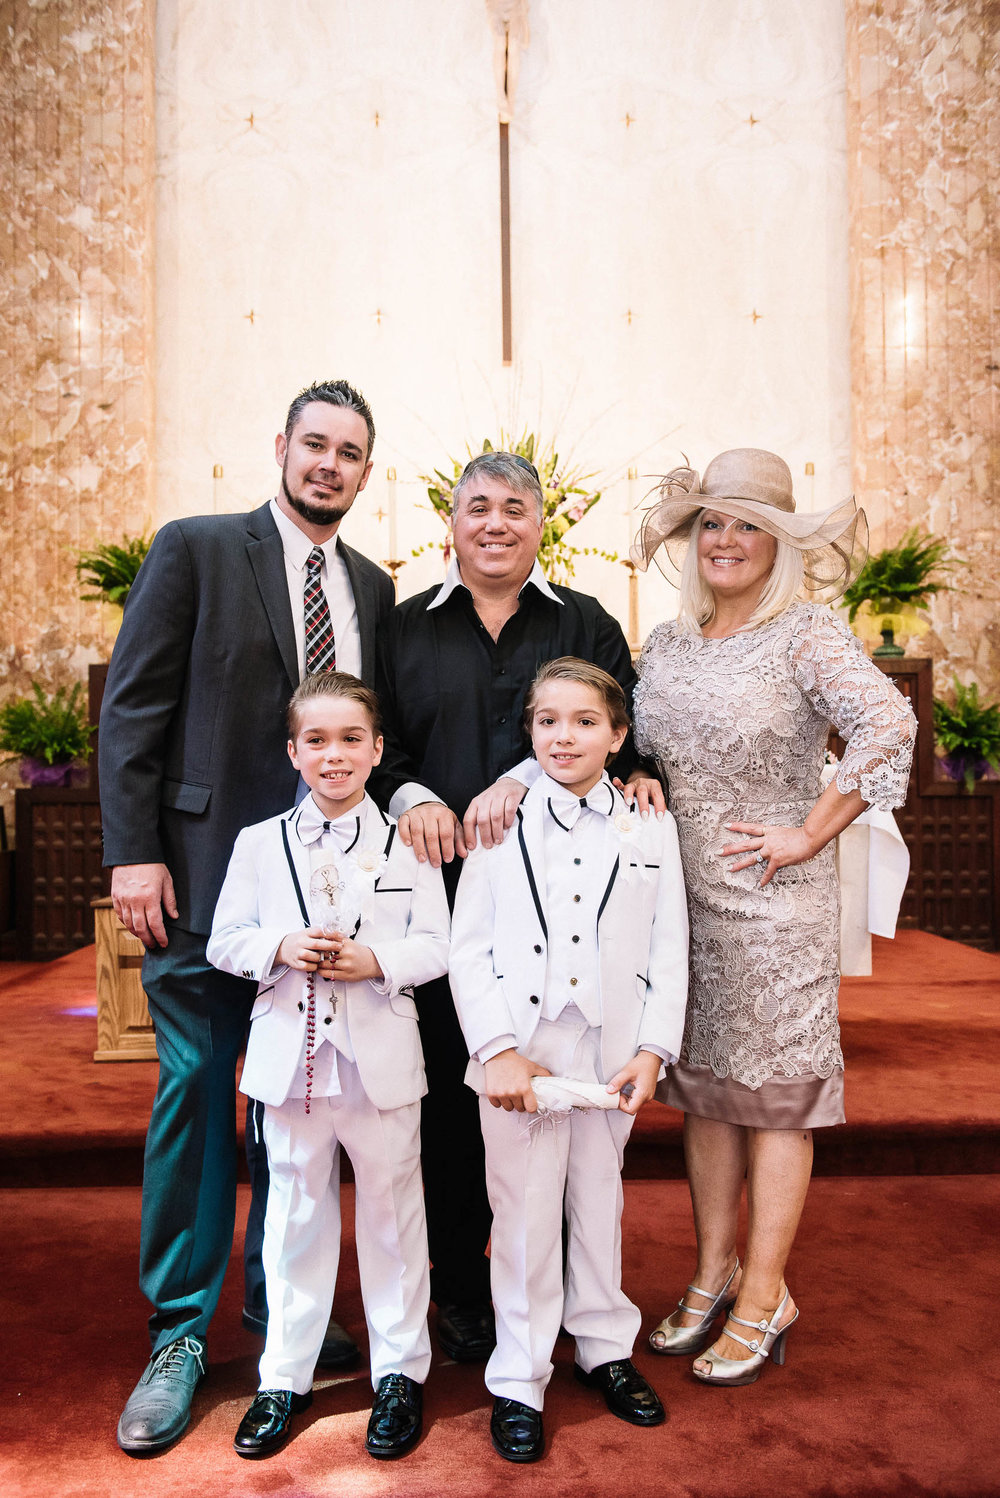 Bryan-Miraflor-Photography-First-Communion-Our-Lady-of-Grace-Church-20160501-0106.jpg